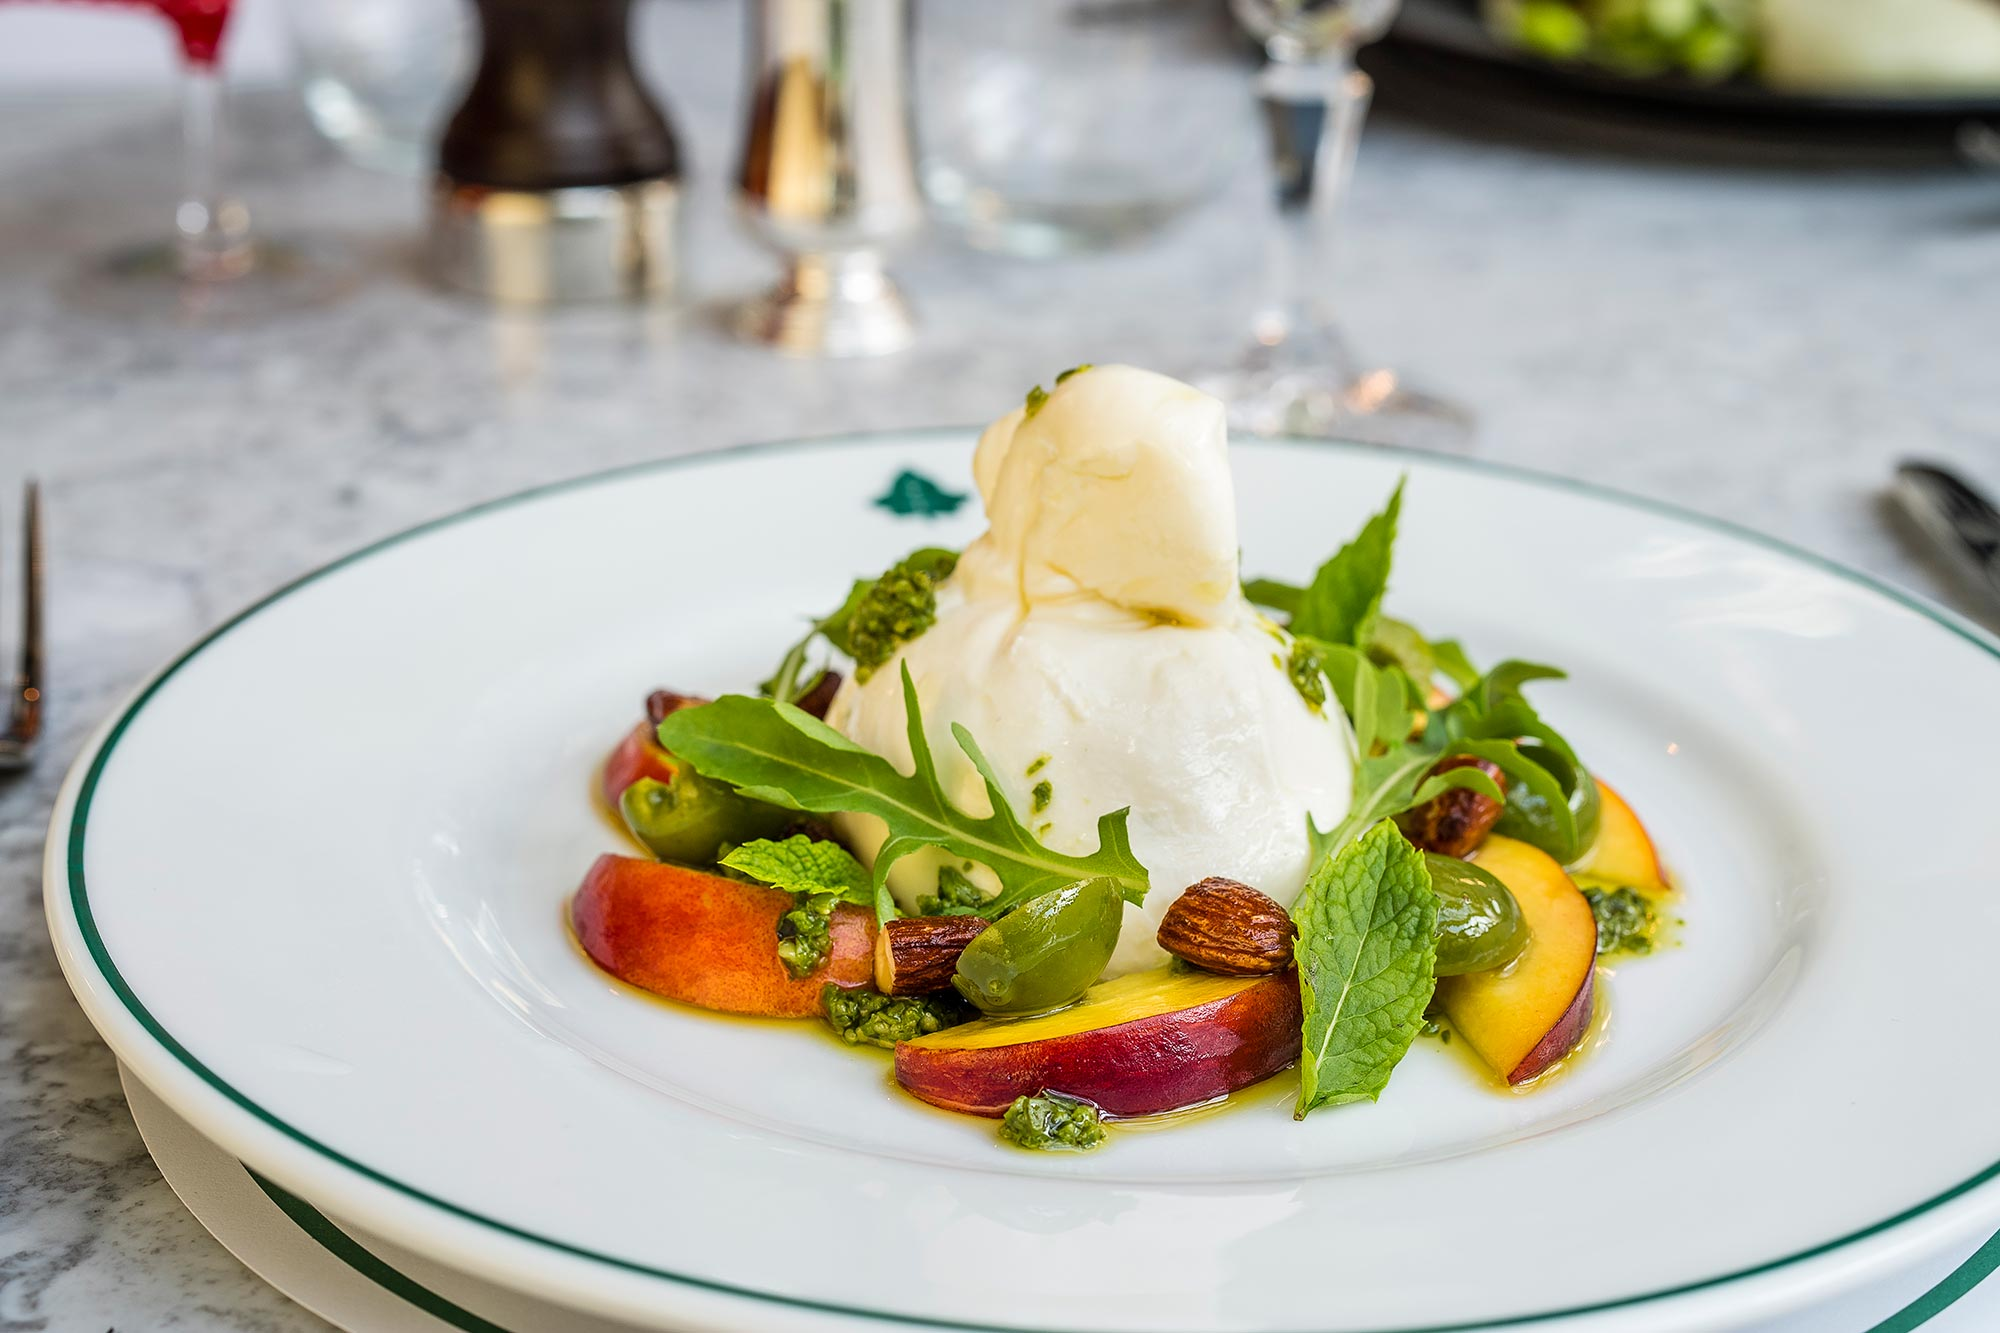 The Ivy Tower Bridge, London - Burrata with Nocellara olives, pesto, rocket and almonds - The Ivy Tower Bridge